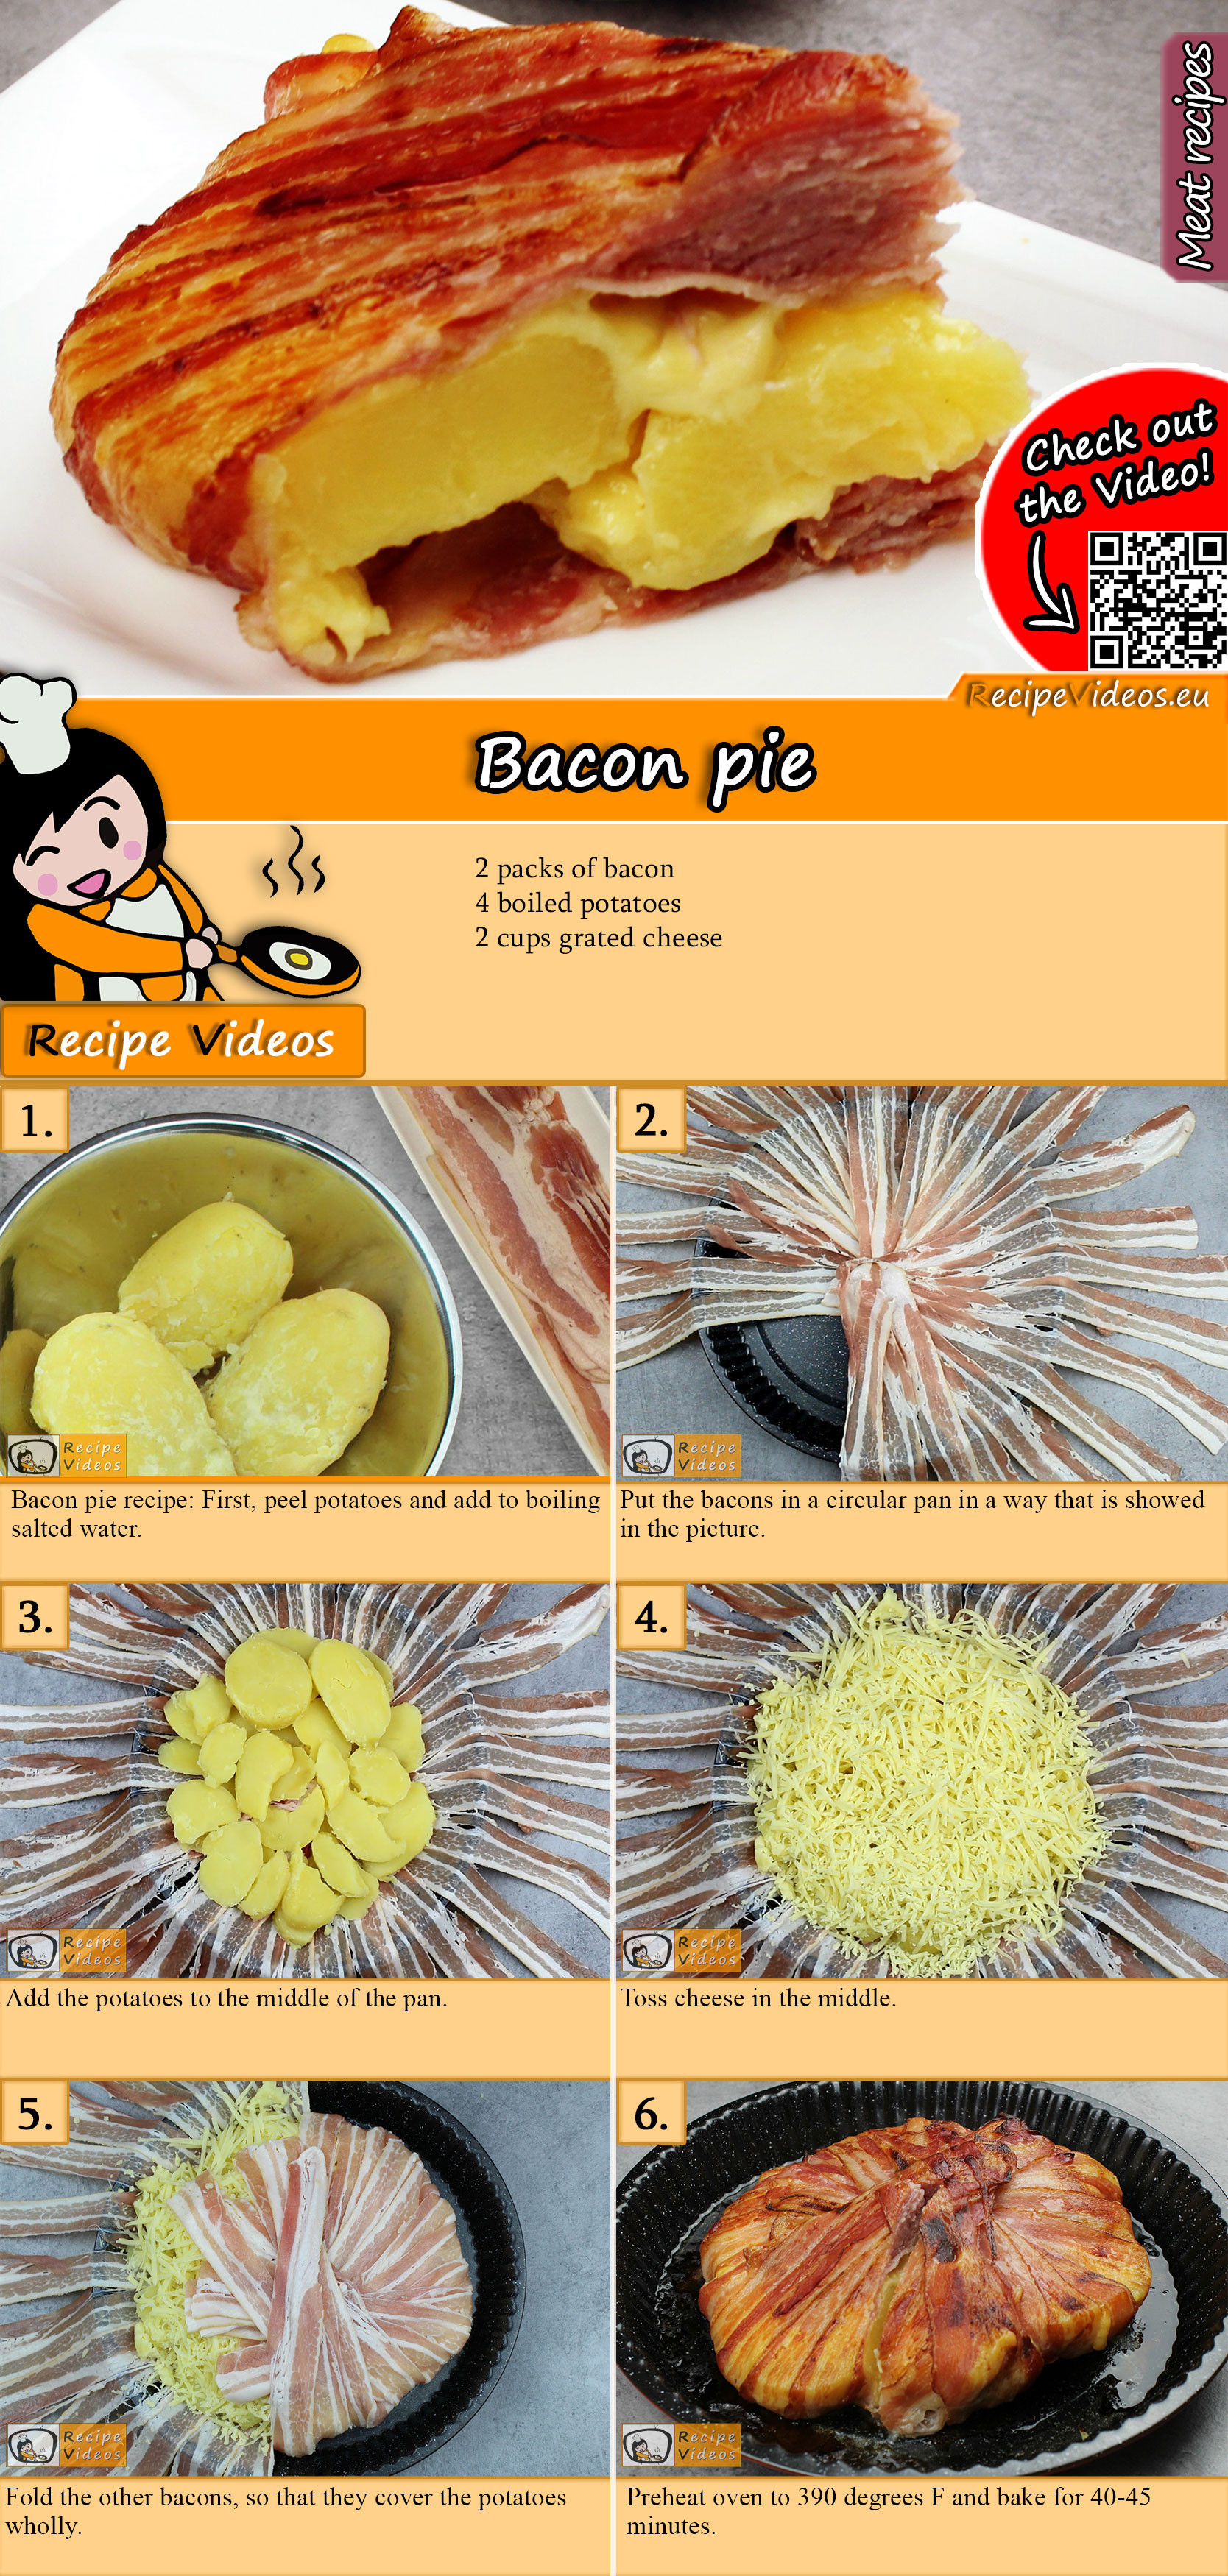 Bacon pie recipe with video